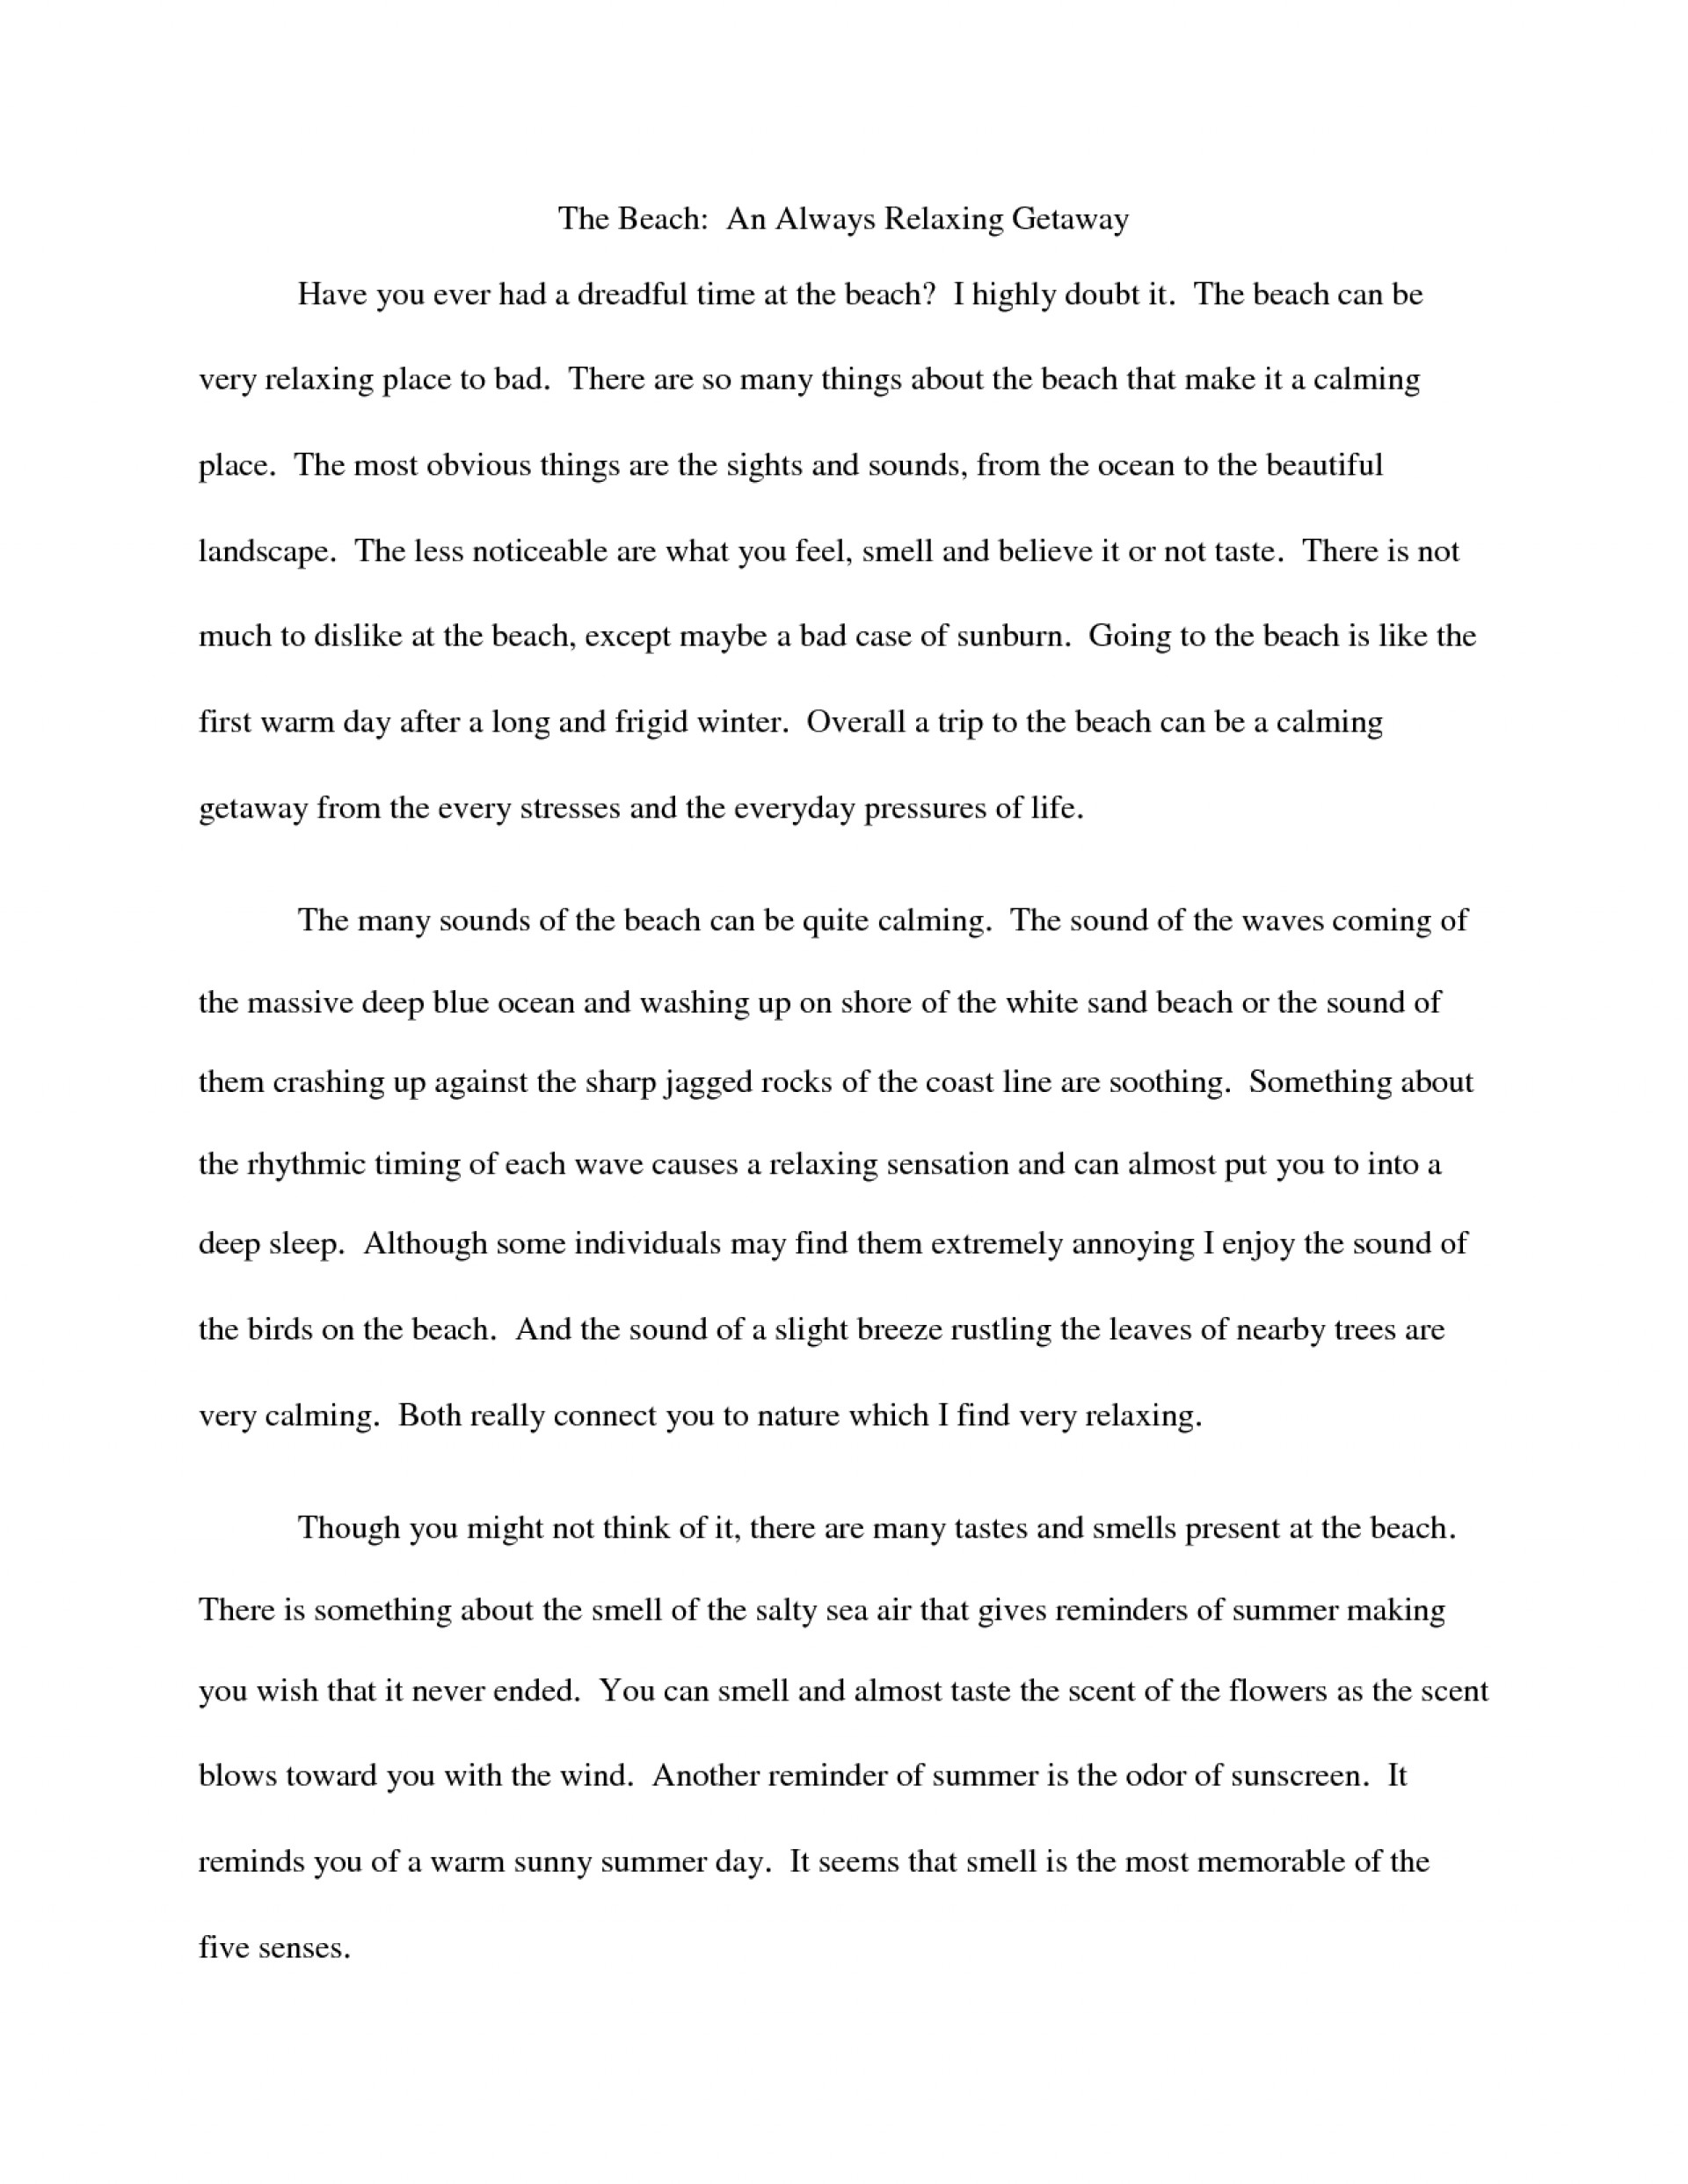 006 Essay Example Descriptive Beach Essays College That Stand Out Odvqltnc Short On The Sunset Paper Barefoot About Walk Vacation Narrative At Night Free Unbelievable Examples For Grade 7 Love Pdf 1920